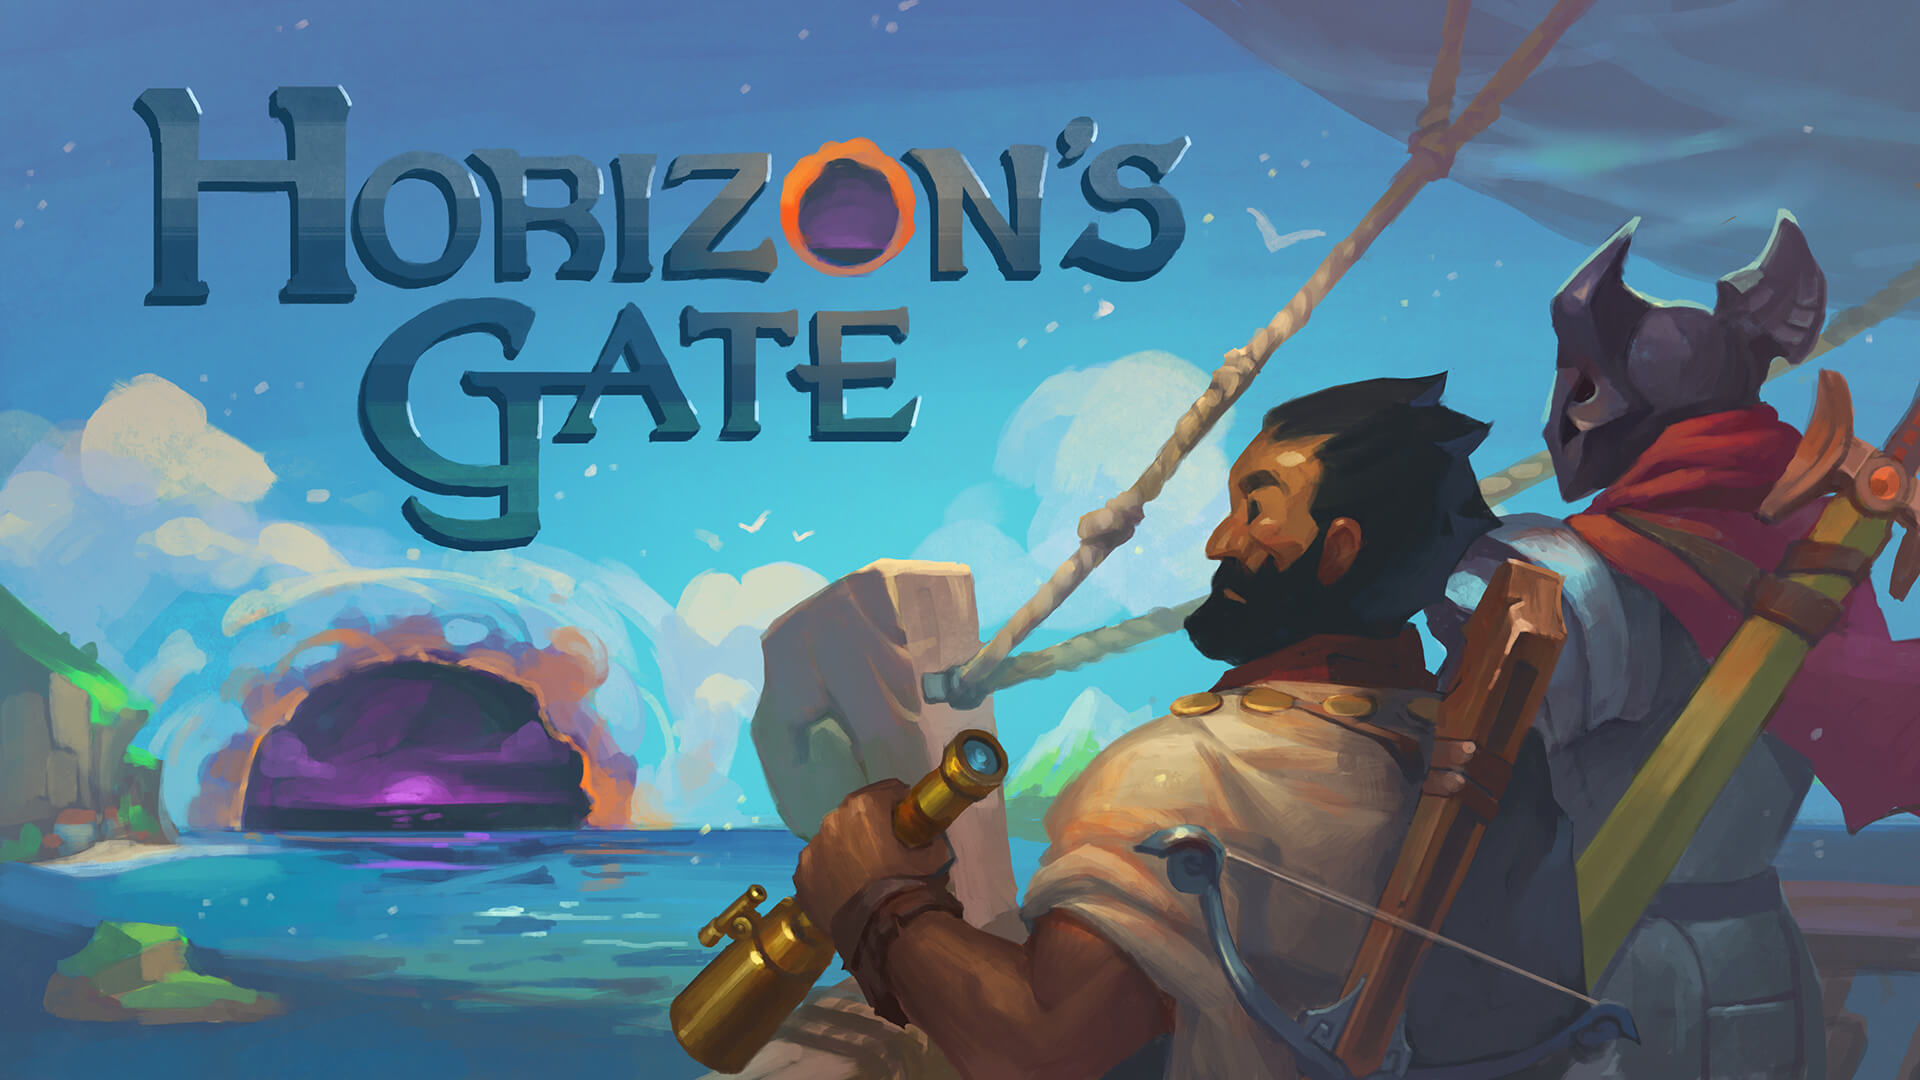 Horizon's Gate Review: Soothingly Sailing to Battle